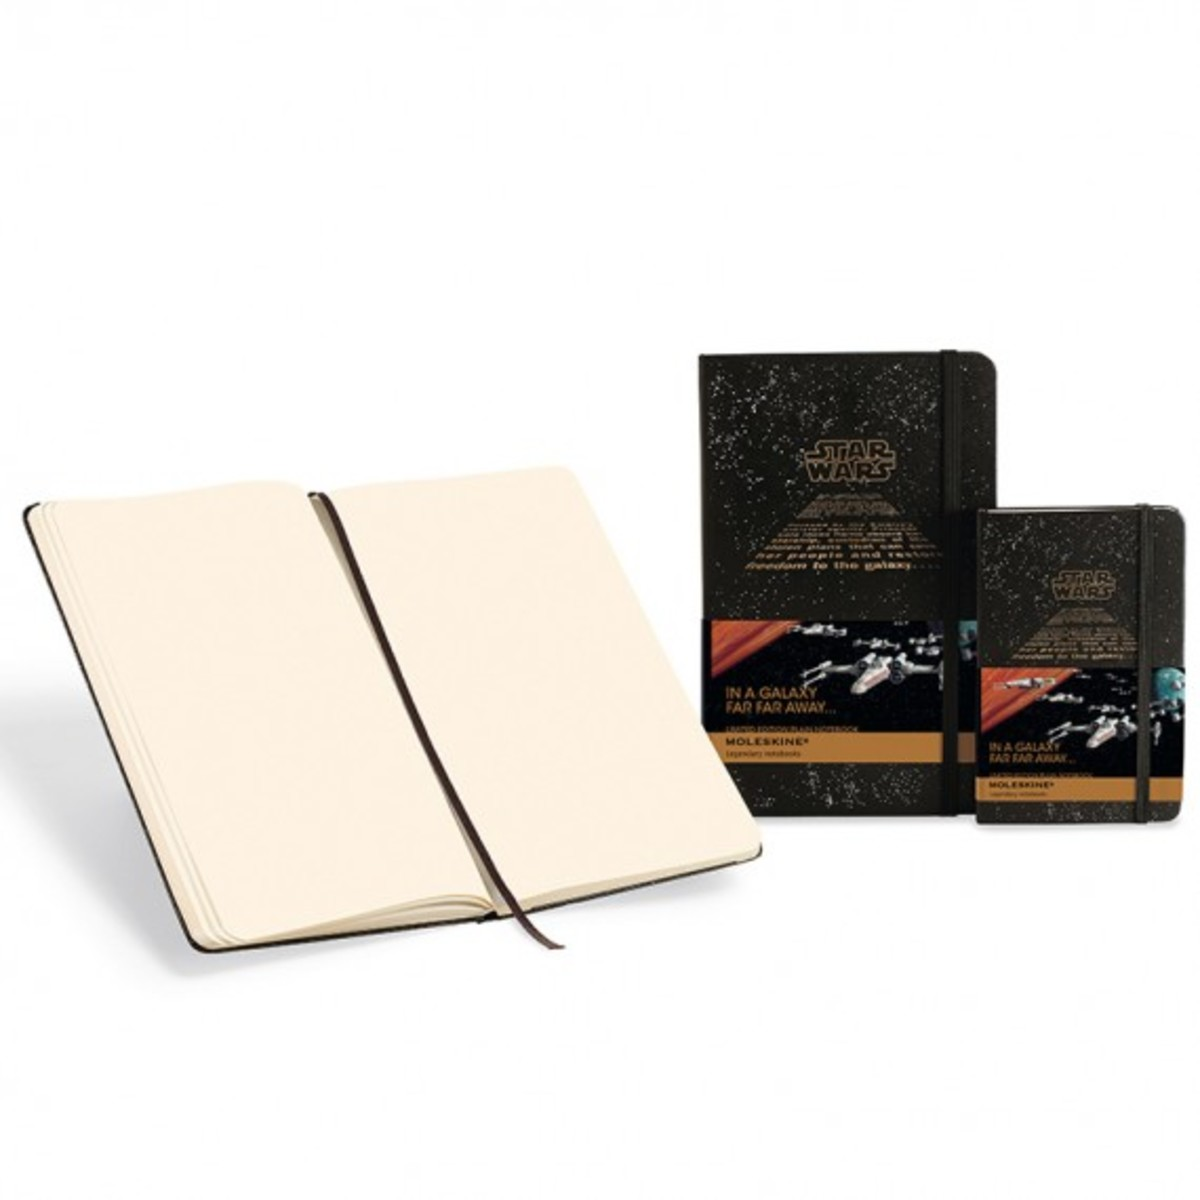 large-plain-notebook-02